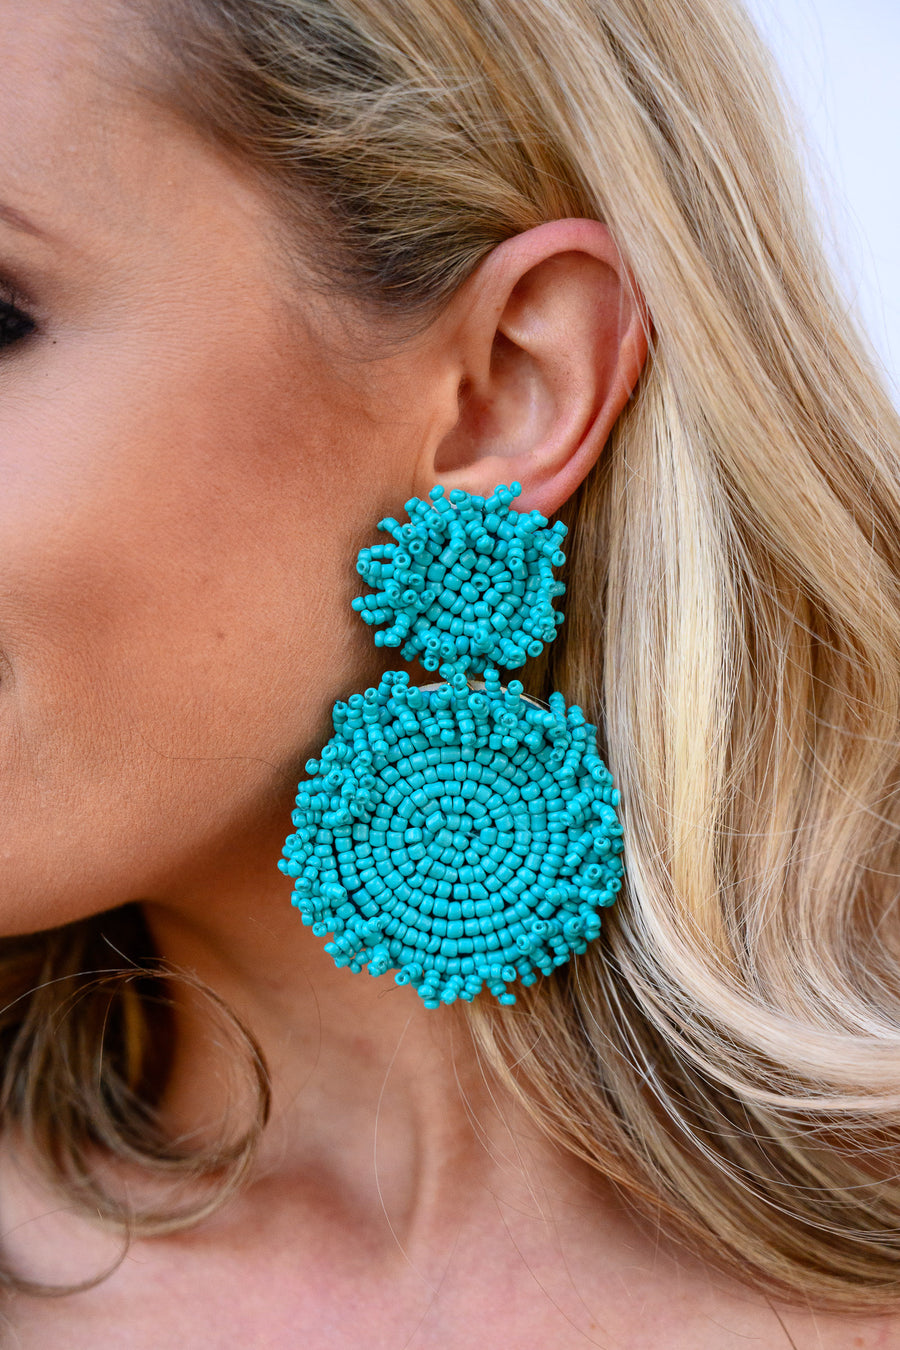 Endless Summer Beaded Earrings - Turquoise women's round large drop earrings, Closet Candy Boutique 1